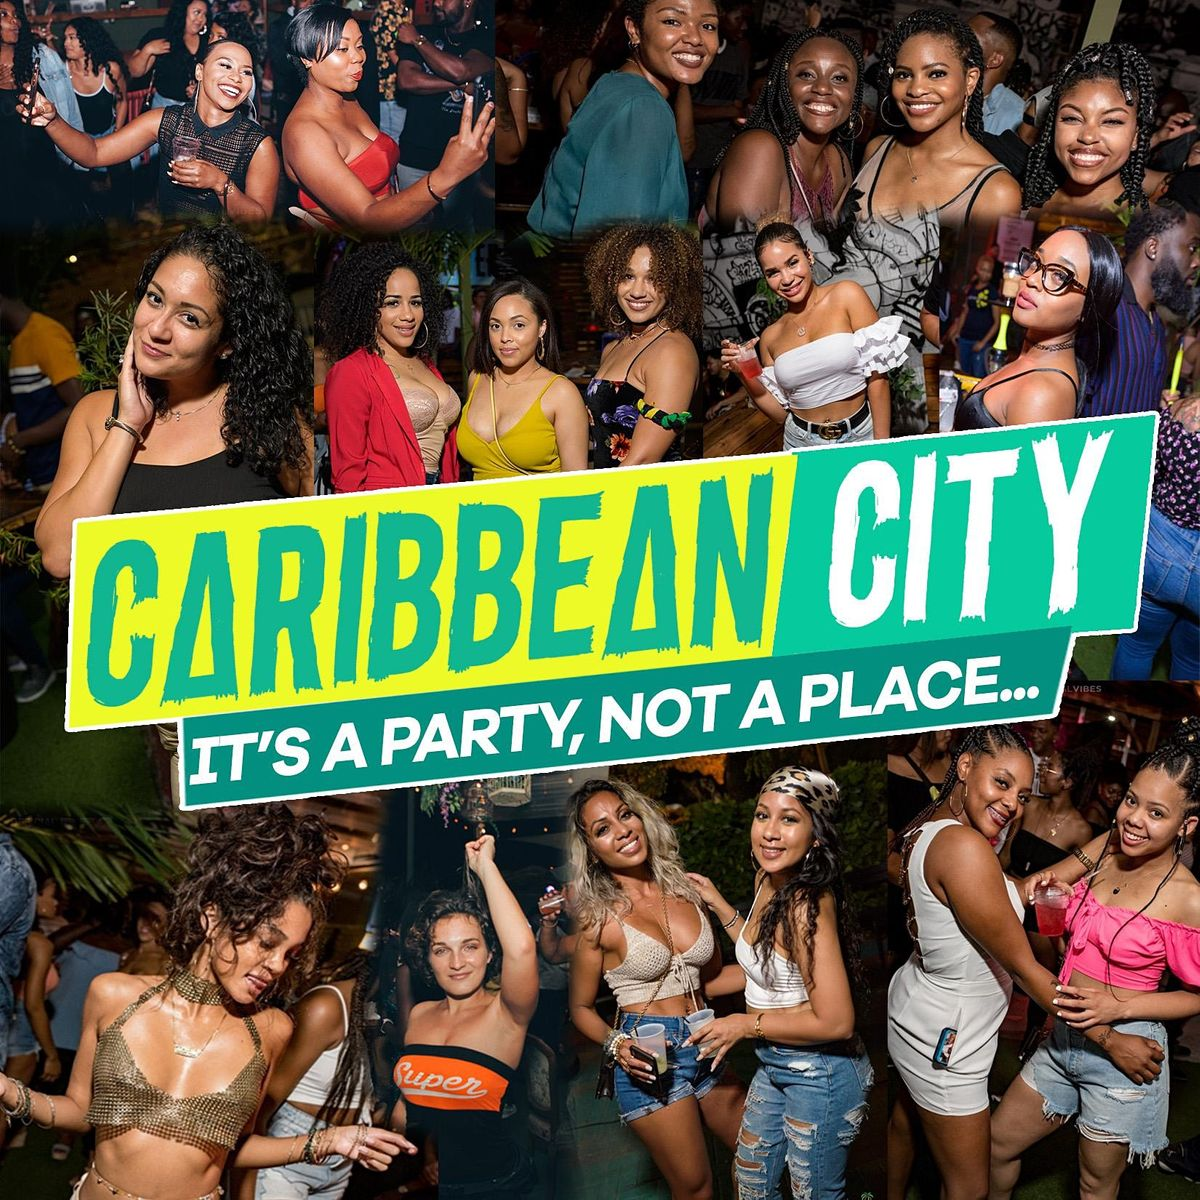 CARIBBEAN CITY - LADIES FREE ALL NIGHT & DRINK FREE RUM PUNCH TILL 12!, 23 October | Event in Sunrise